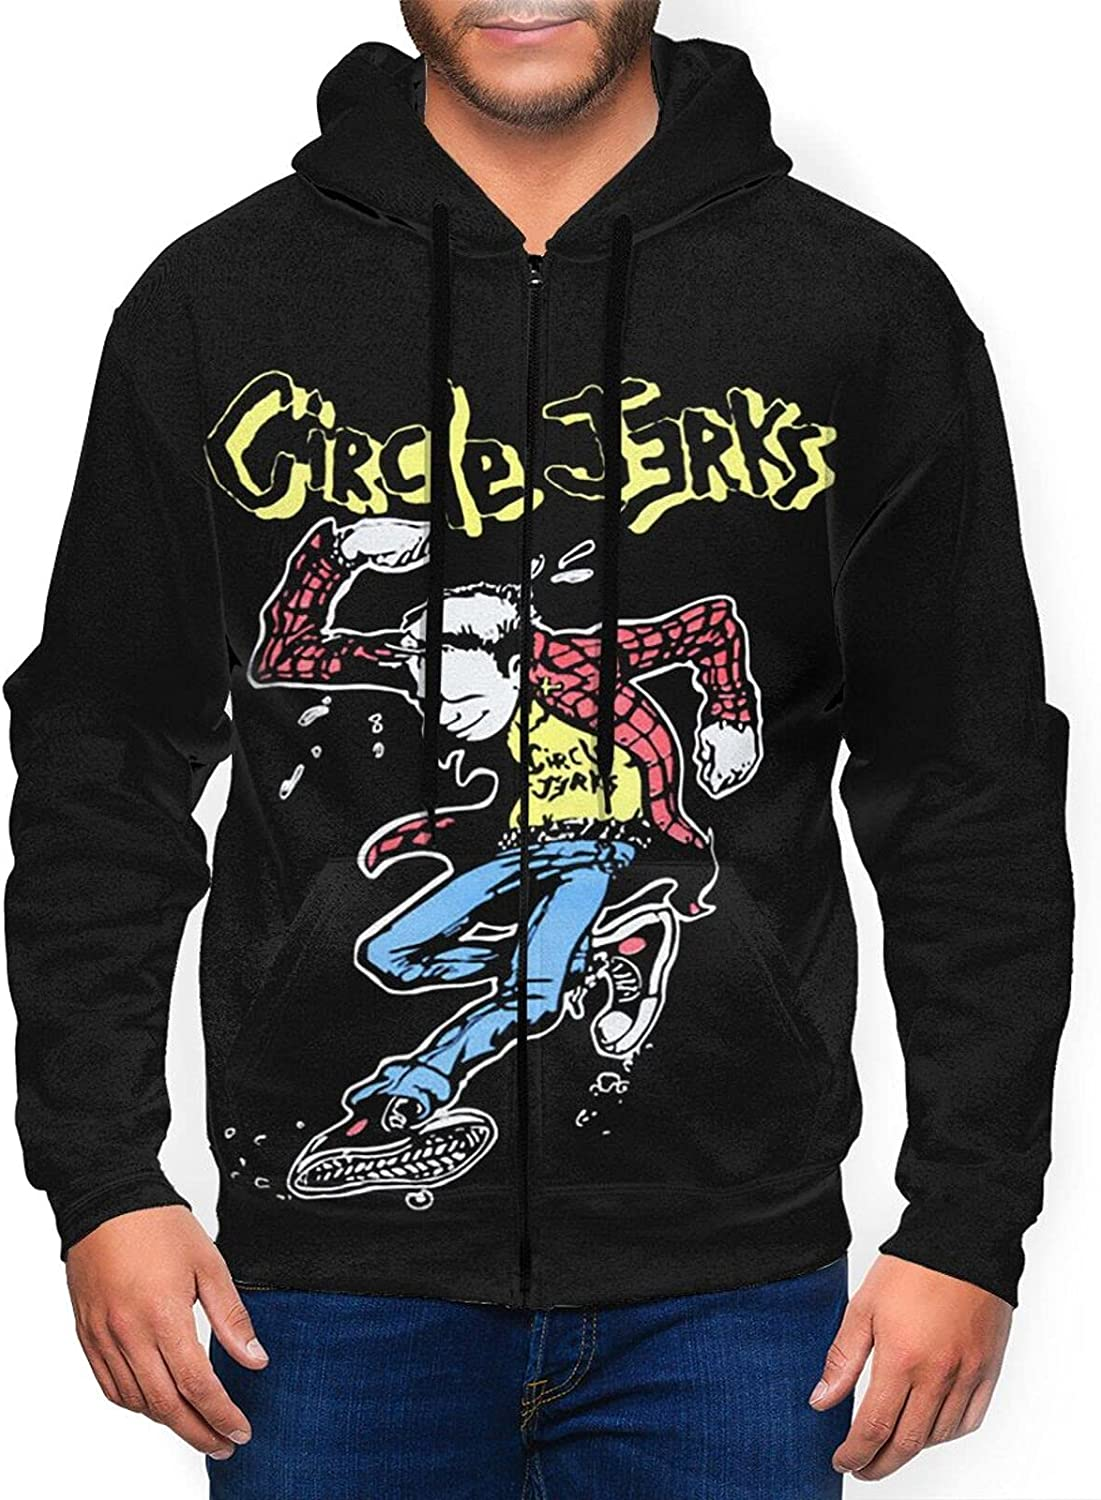 Circle Jerks Men'S Hooded Zipper Coa Shirt Classic SEAL limited product favorite Jacket Casual